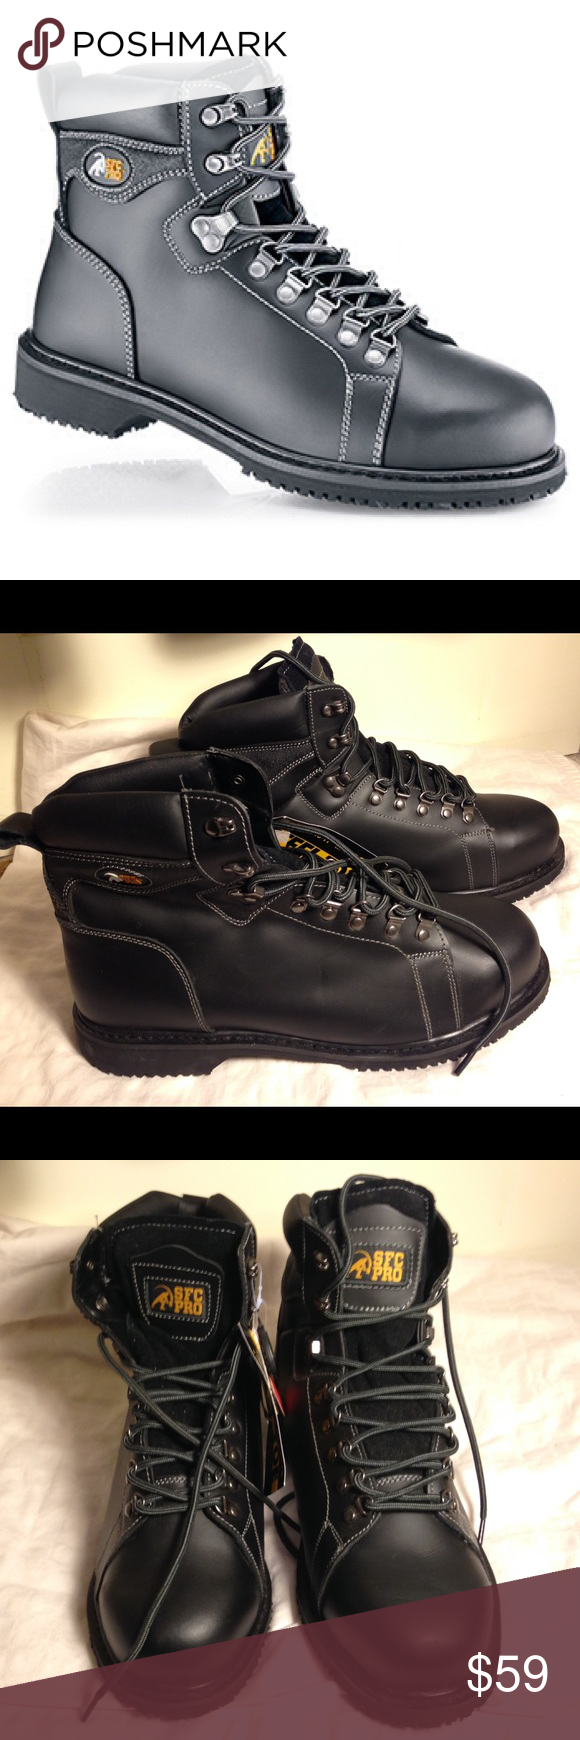 971268cb2af NWT SFC Pro Expedition Steel Toe Work Boots NWT, but have a few ...